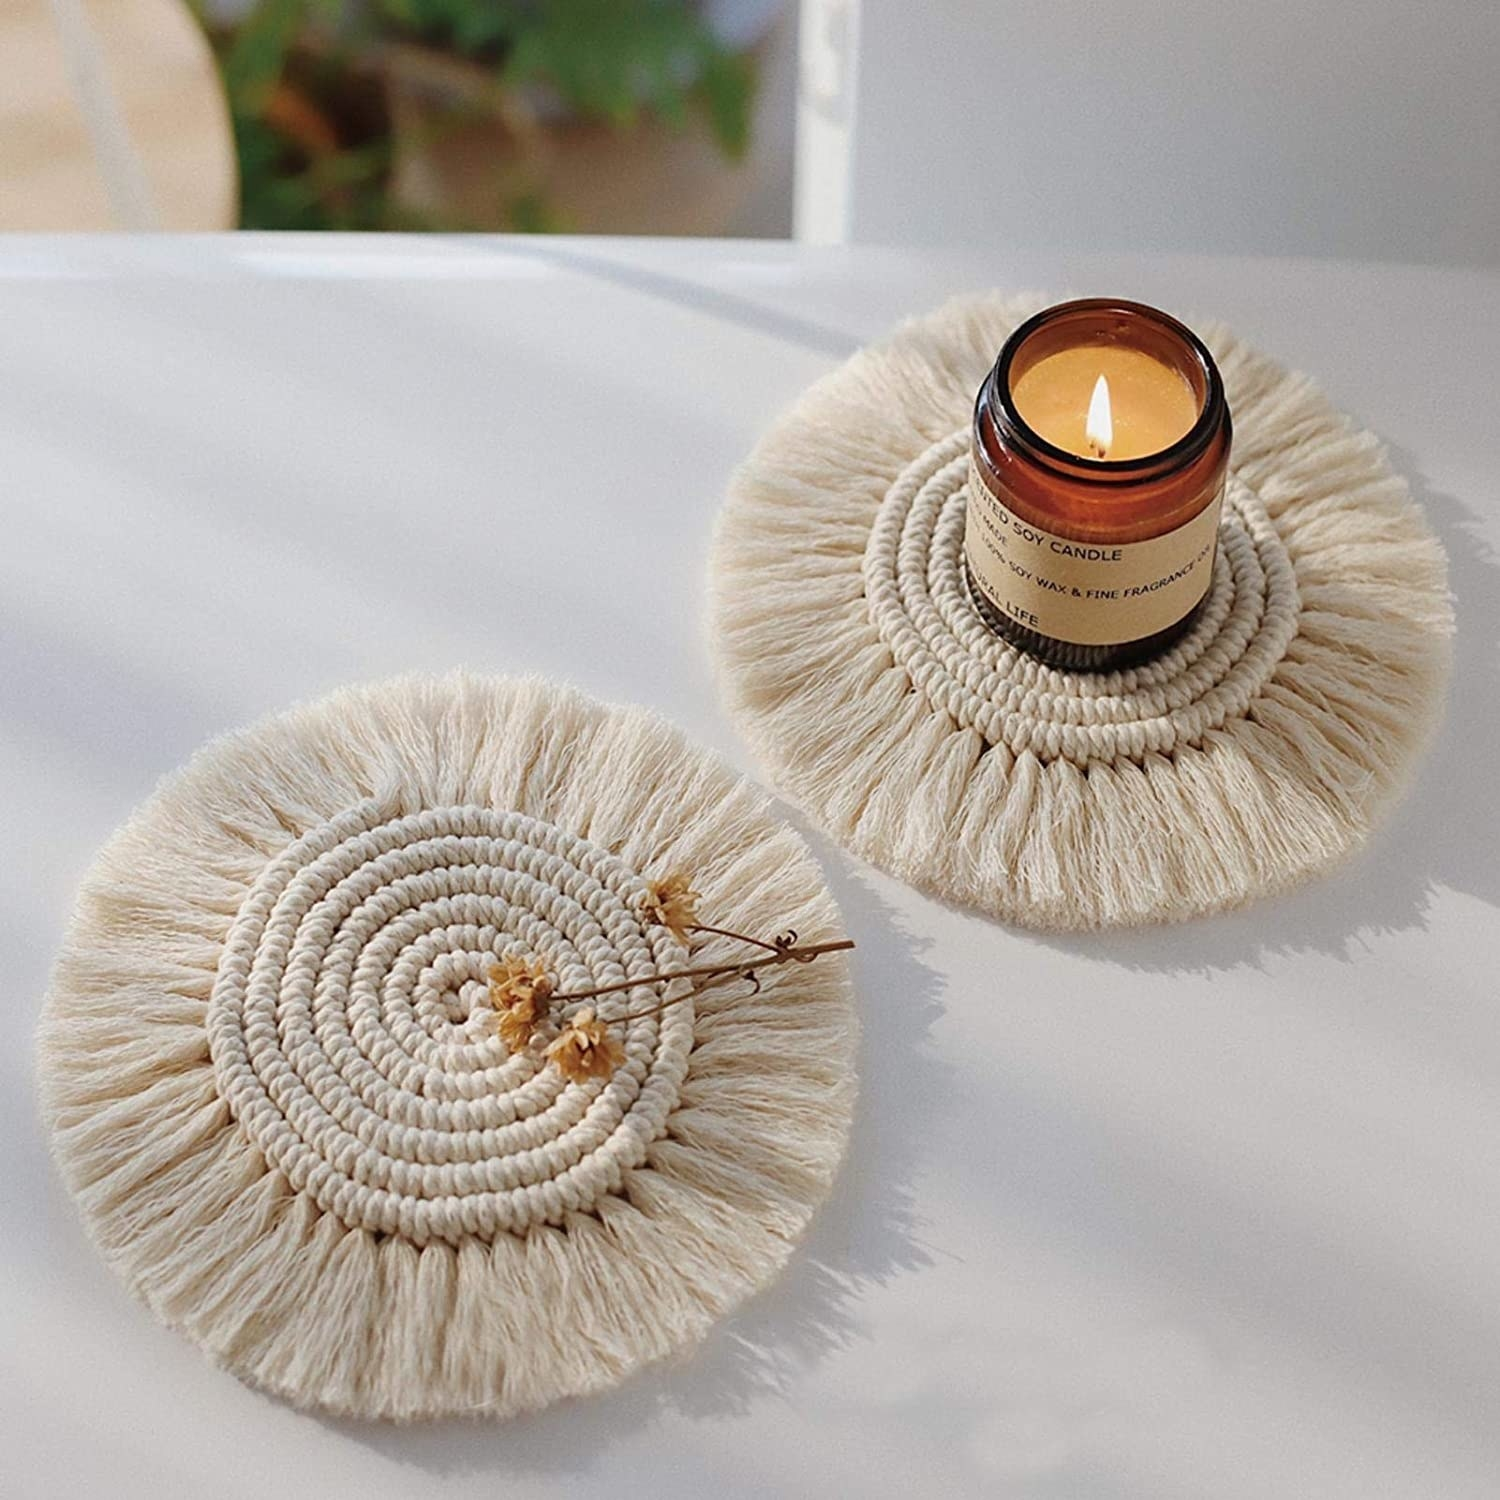 Two of the cream macrame coasters